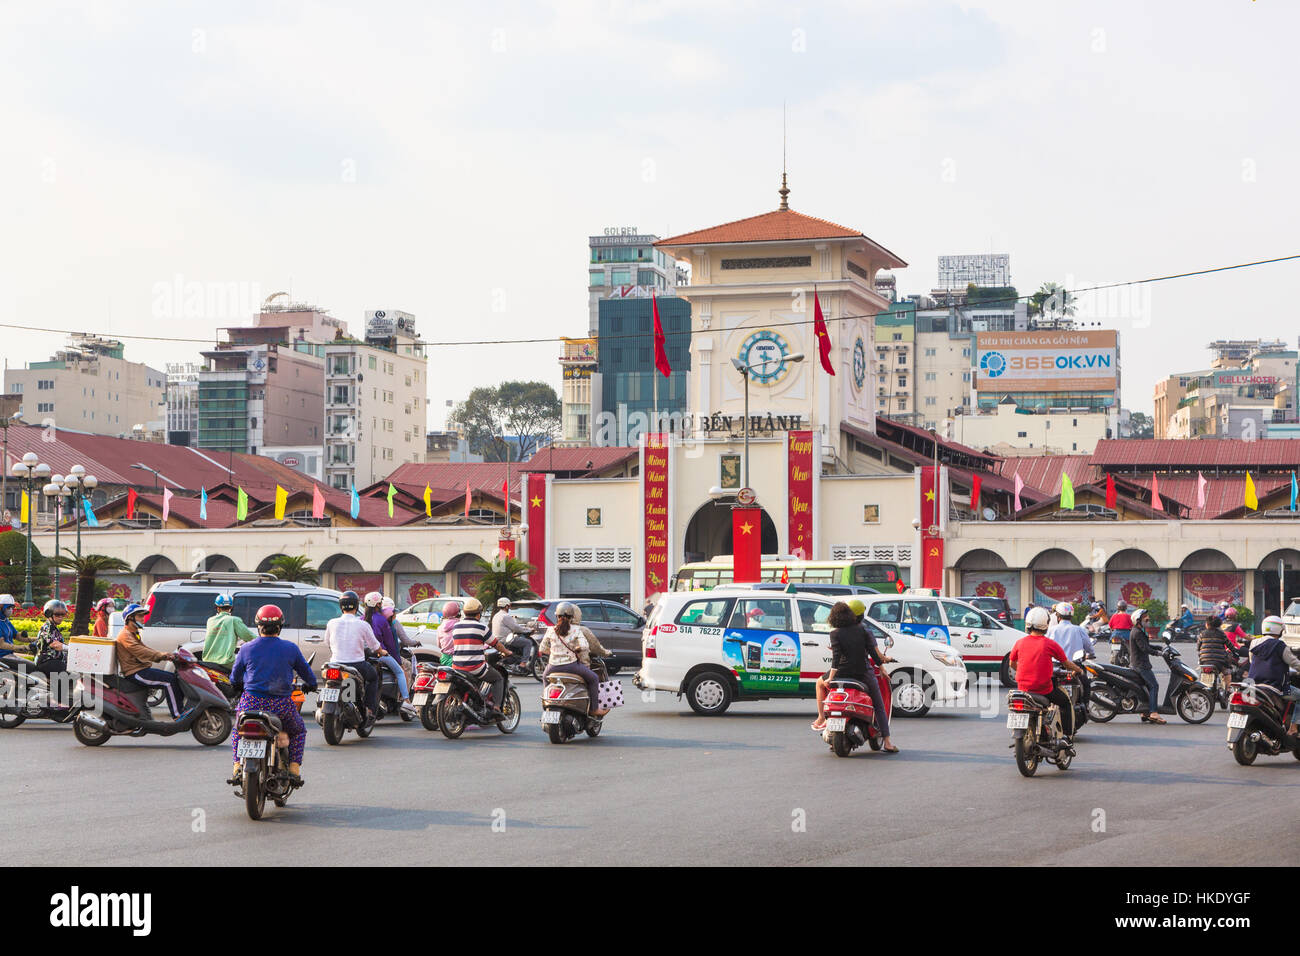 HO CHI MINH CITY, VIETNAM - FEBRUARY 2 2016: Cars and motorcycles rush around the Saigon Central Market known locally Stock Photo